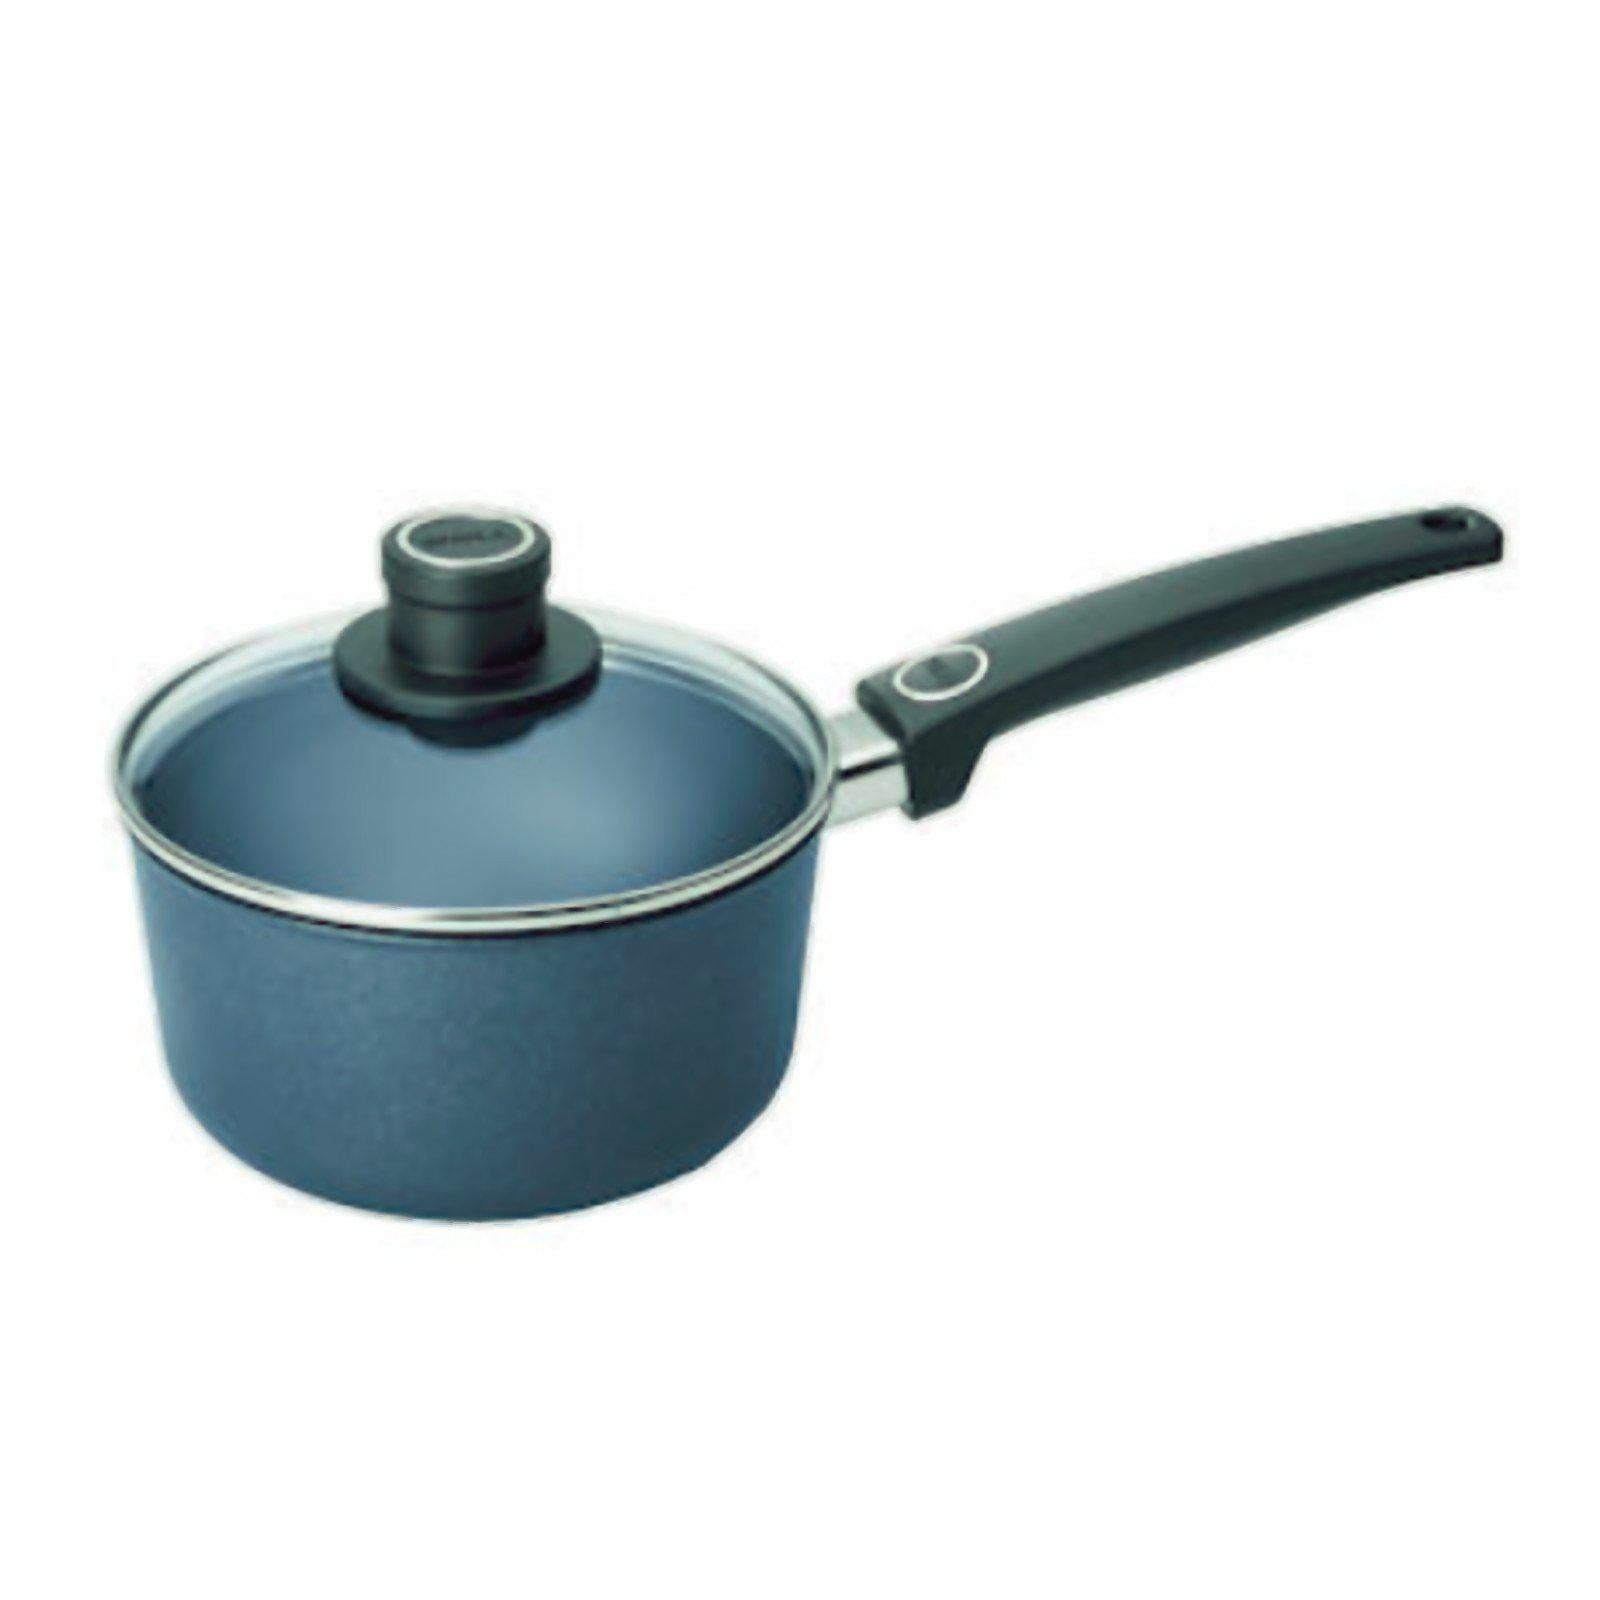 Woll Saphir Lite 18 cm Induction Saucepan with Lid-Saucepan-Chef's Quality Cookware